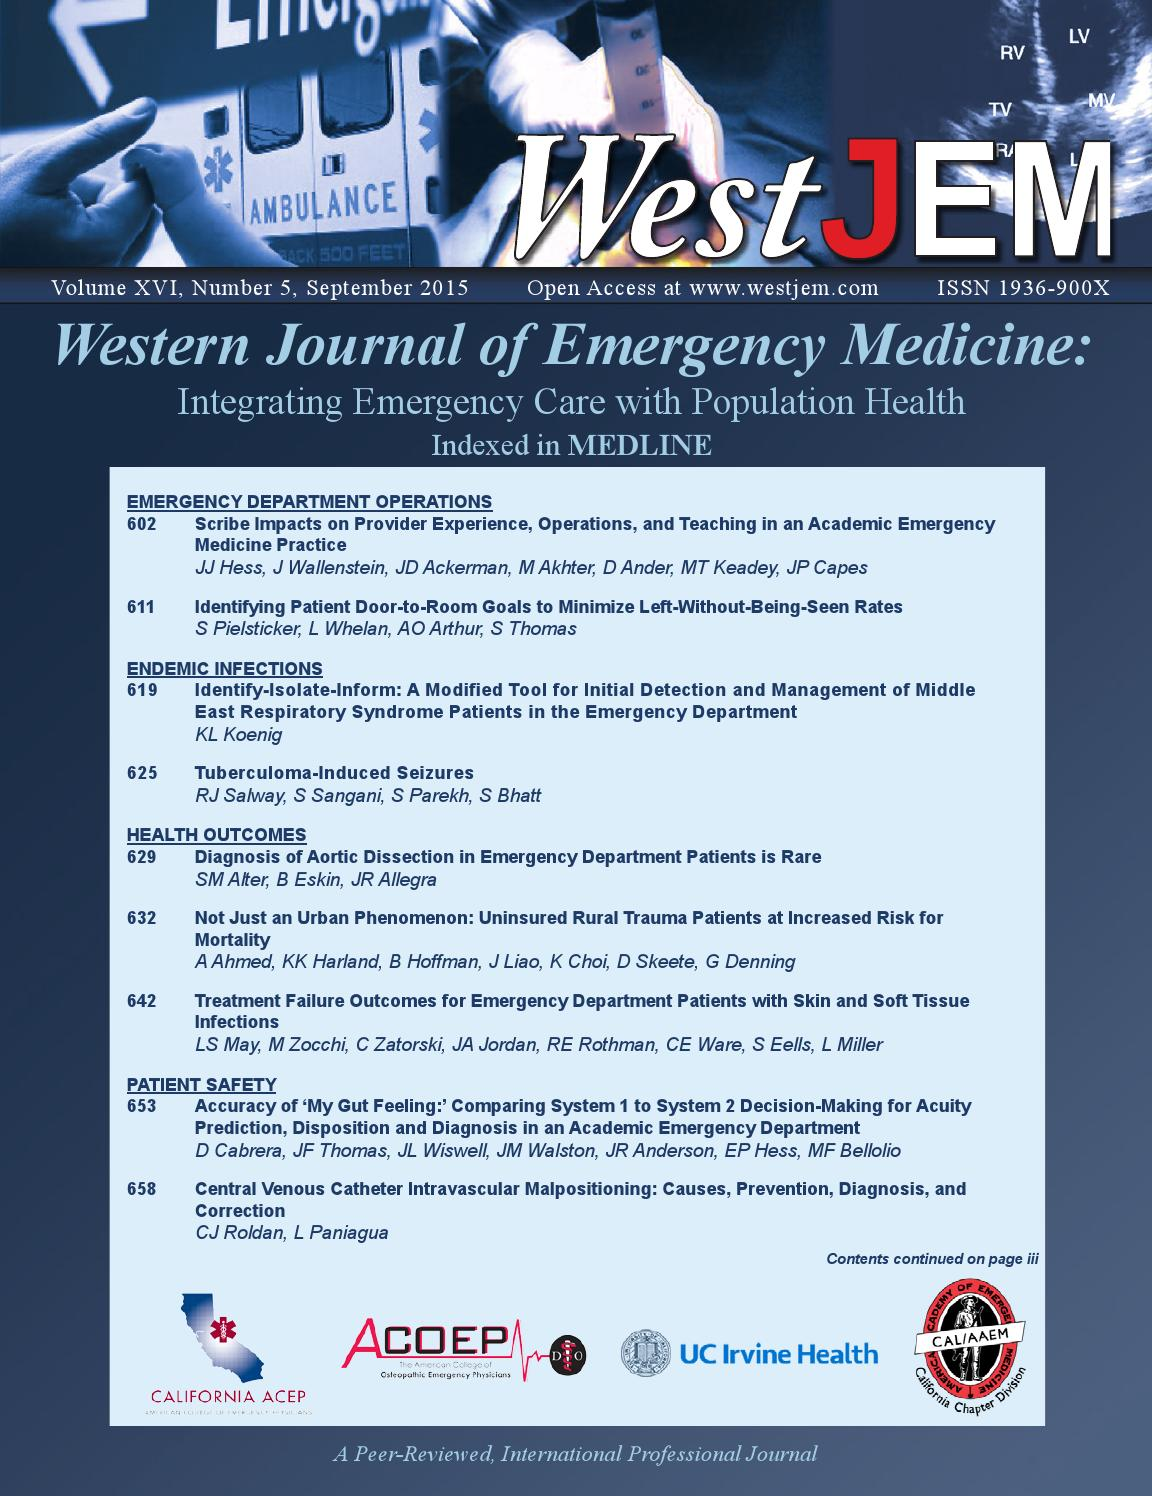 Volume 16 Issue 5 By Western Journal Of Emergency Medicine Issuu 1969 Beaumont Wiring Diagram